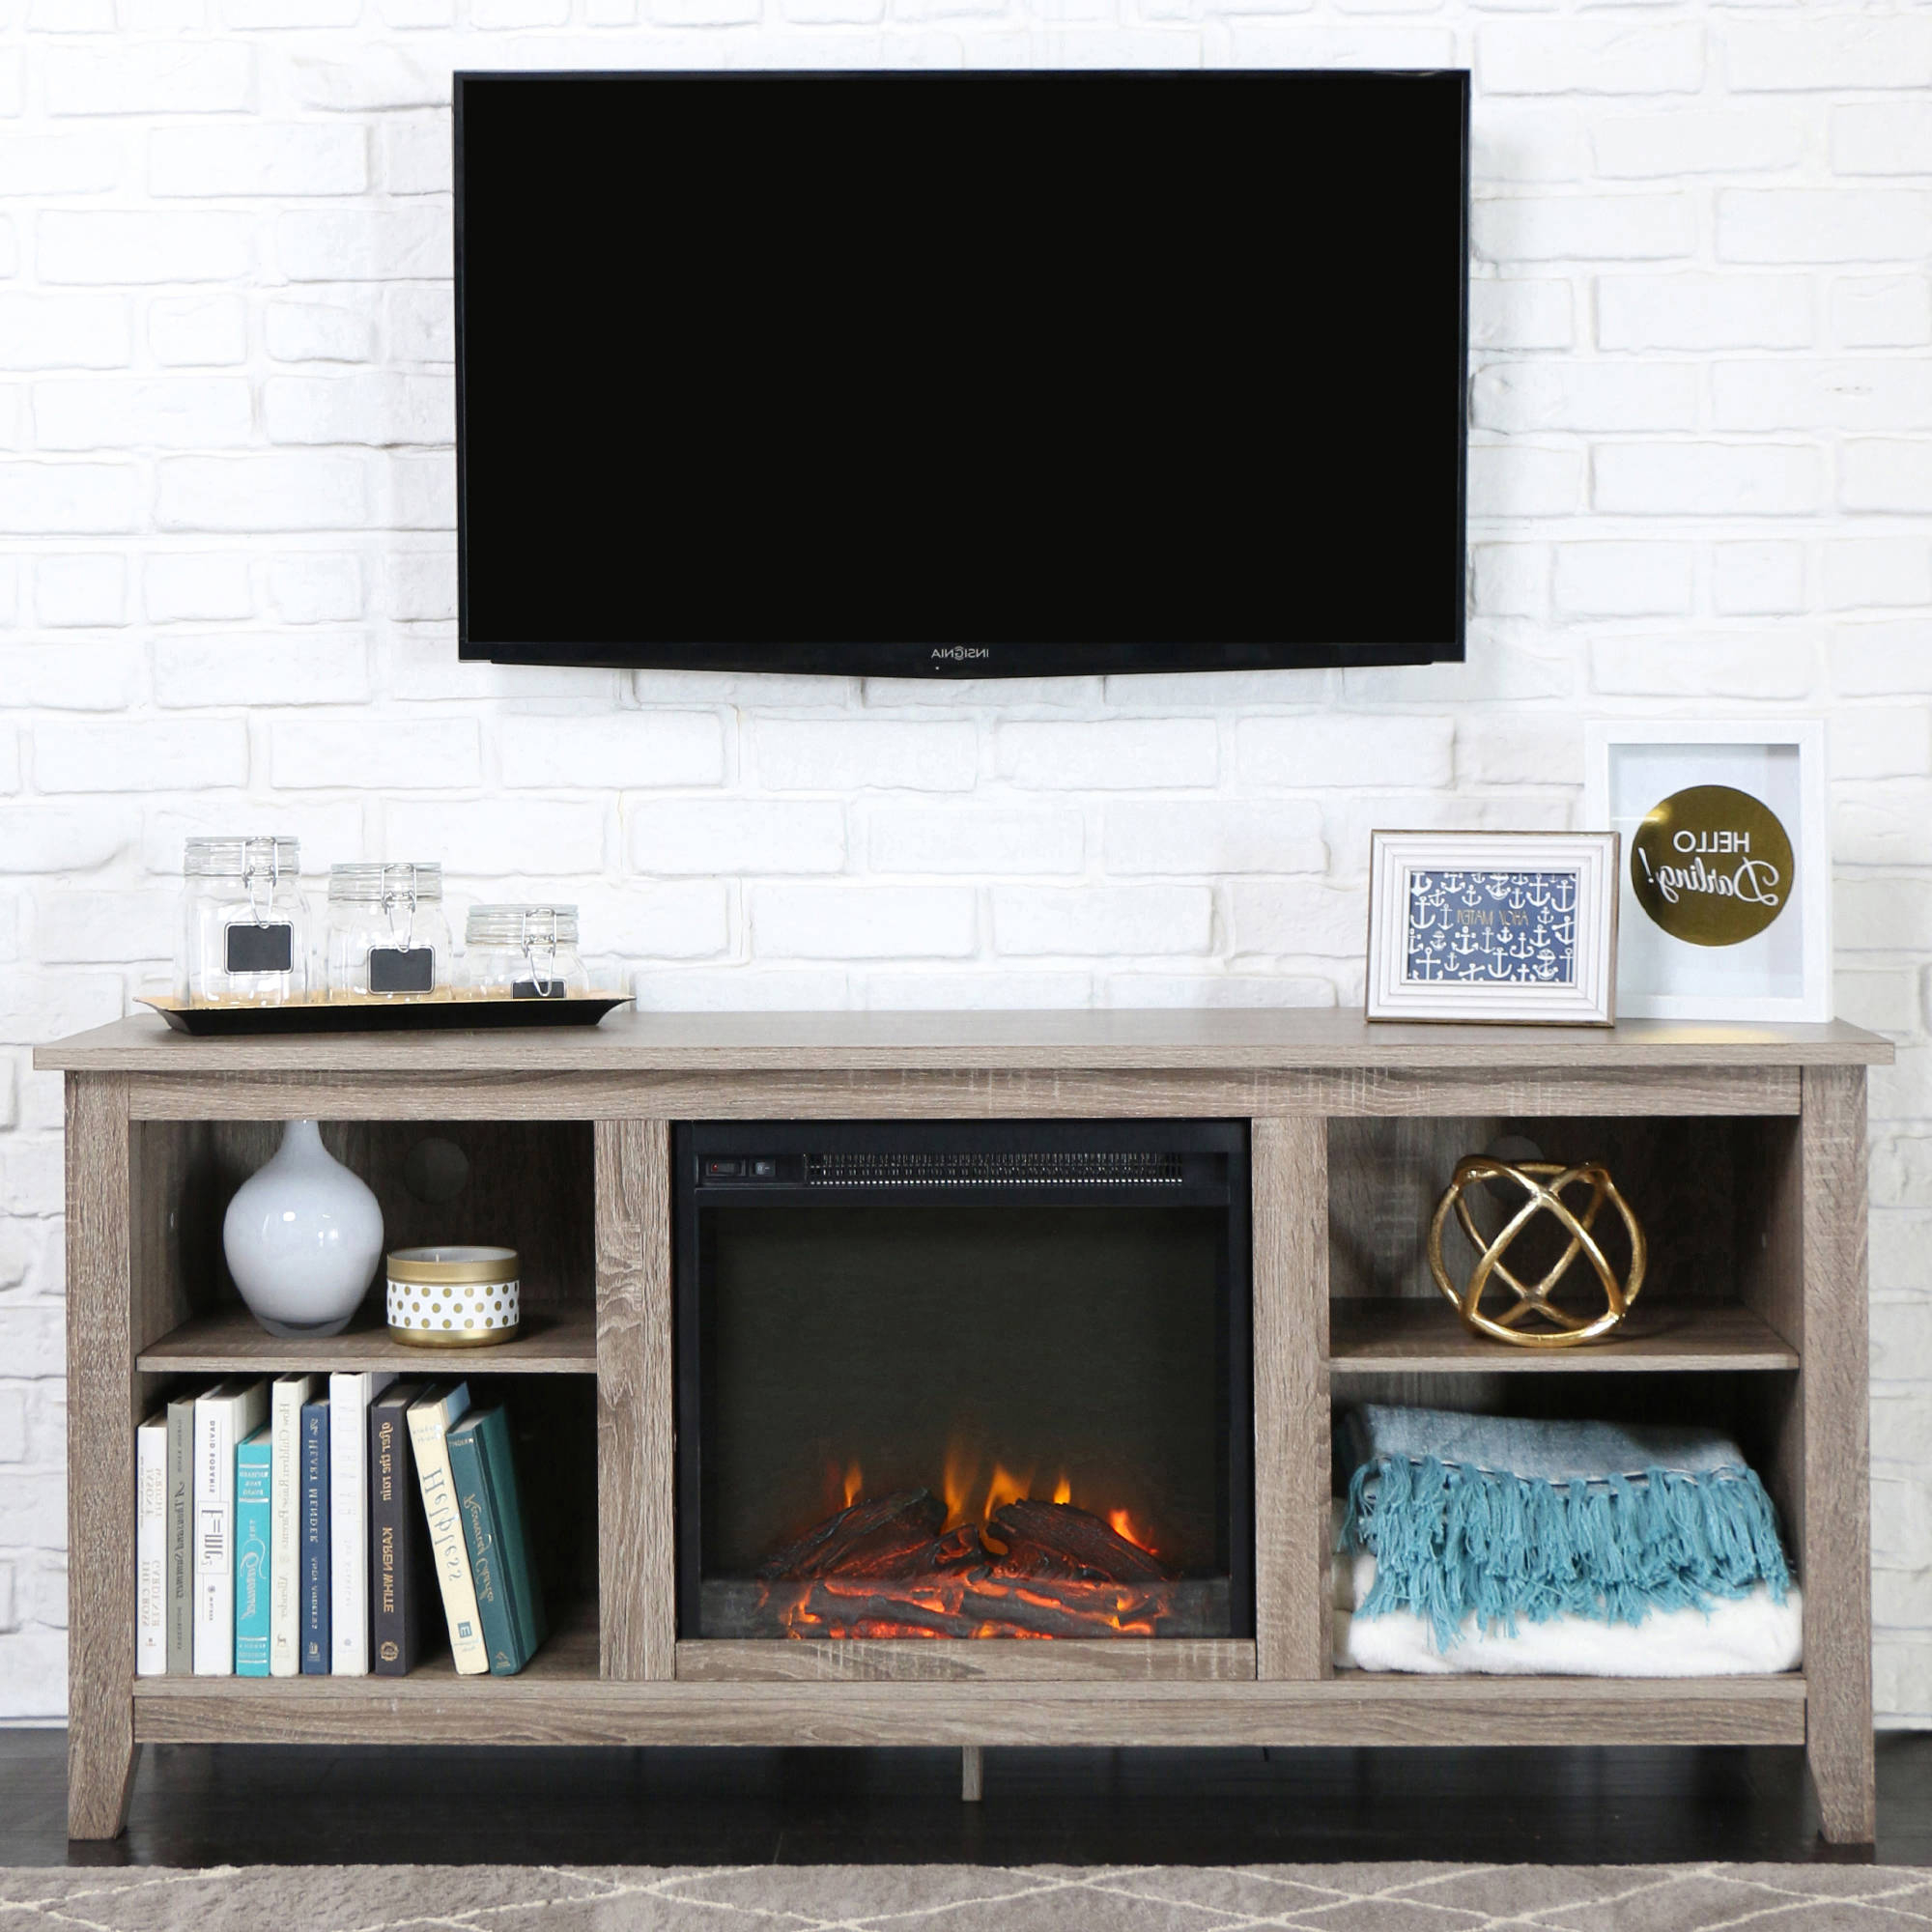 Famous Big Lots Tv Stand Manual Electric Fireplace Walmart White Amazon And Within Tv Stands With Storage Baskets (Gallery 3 of 20)